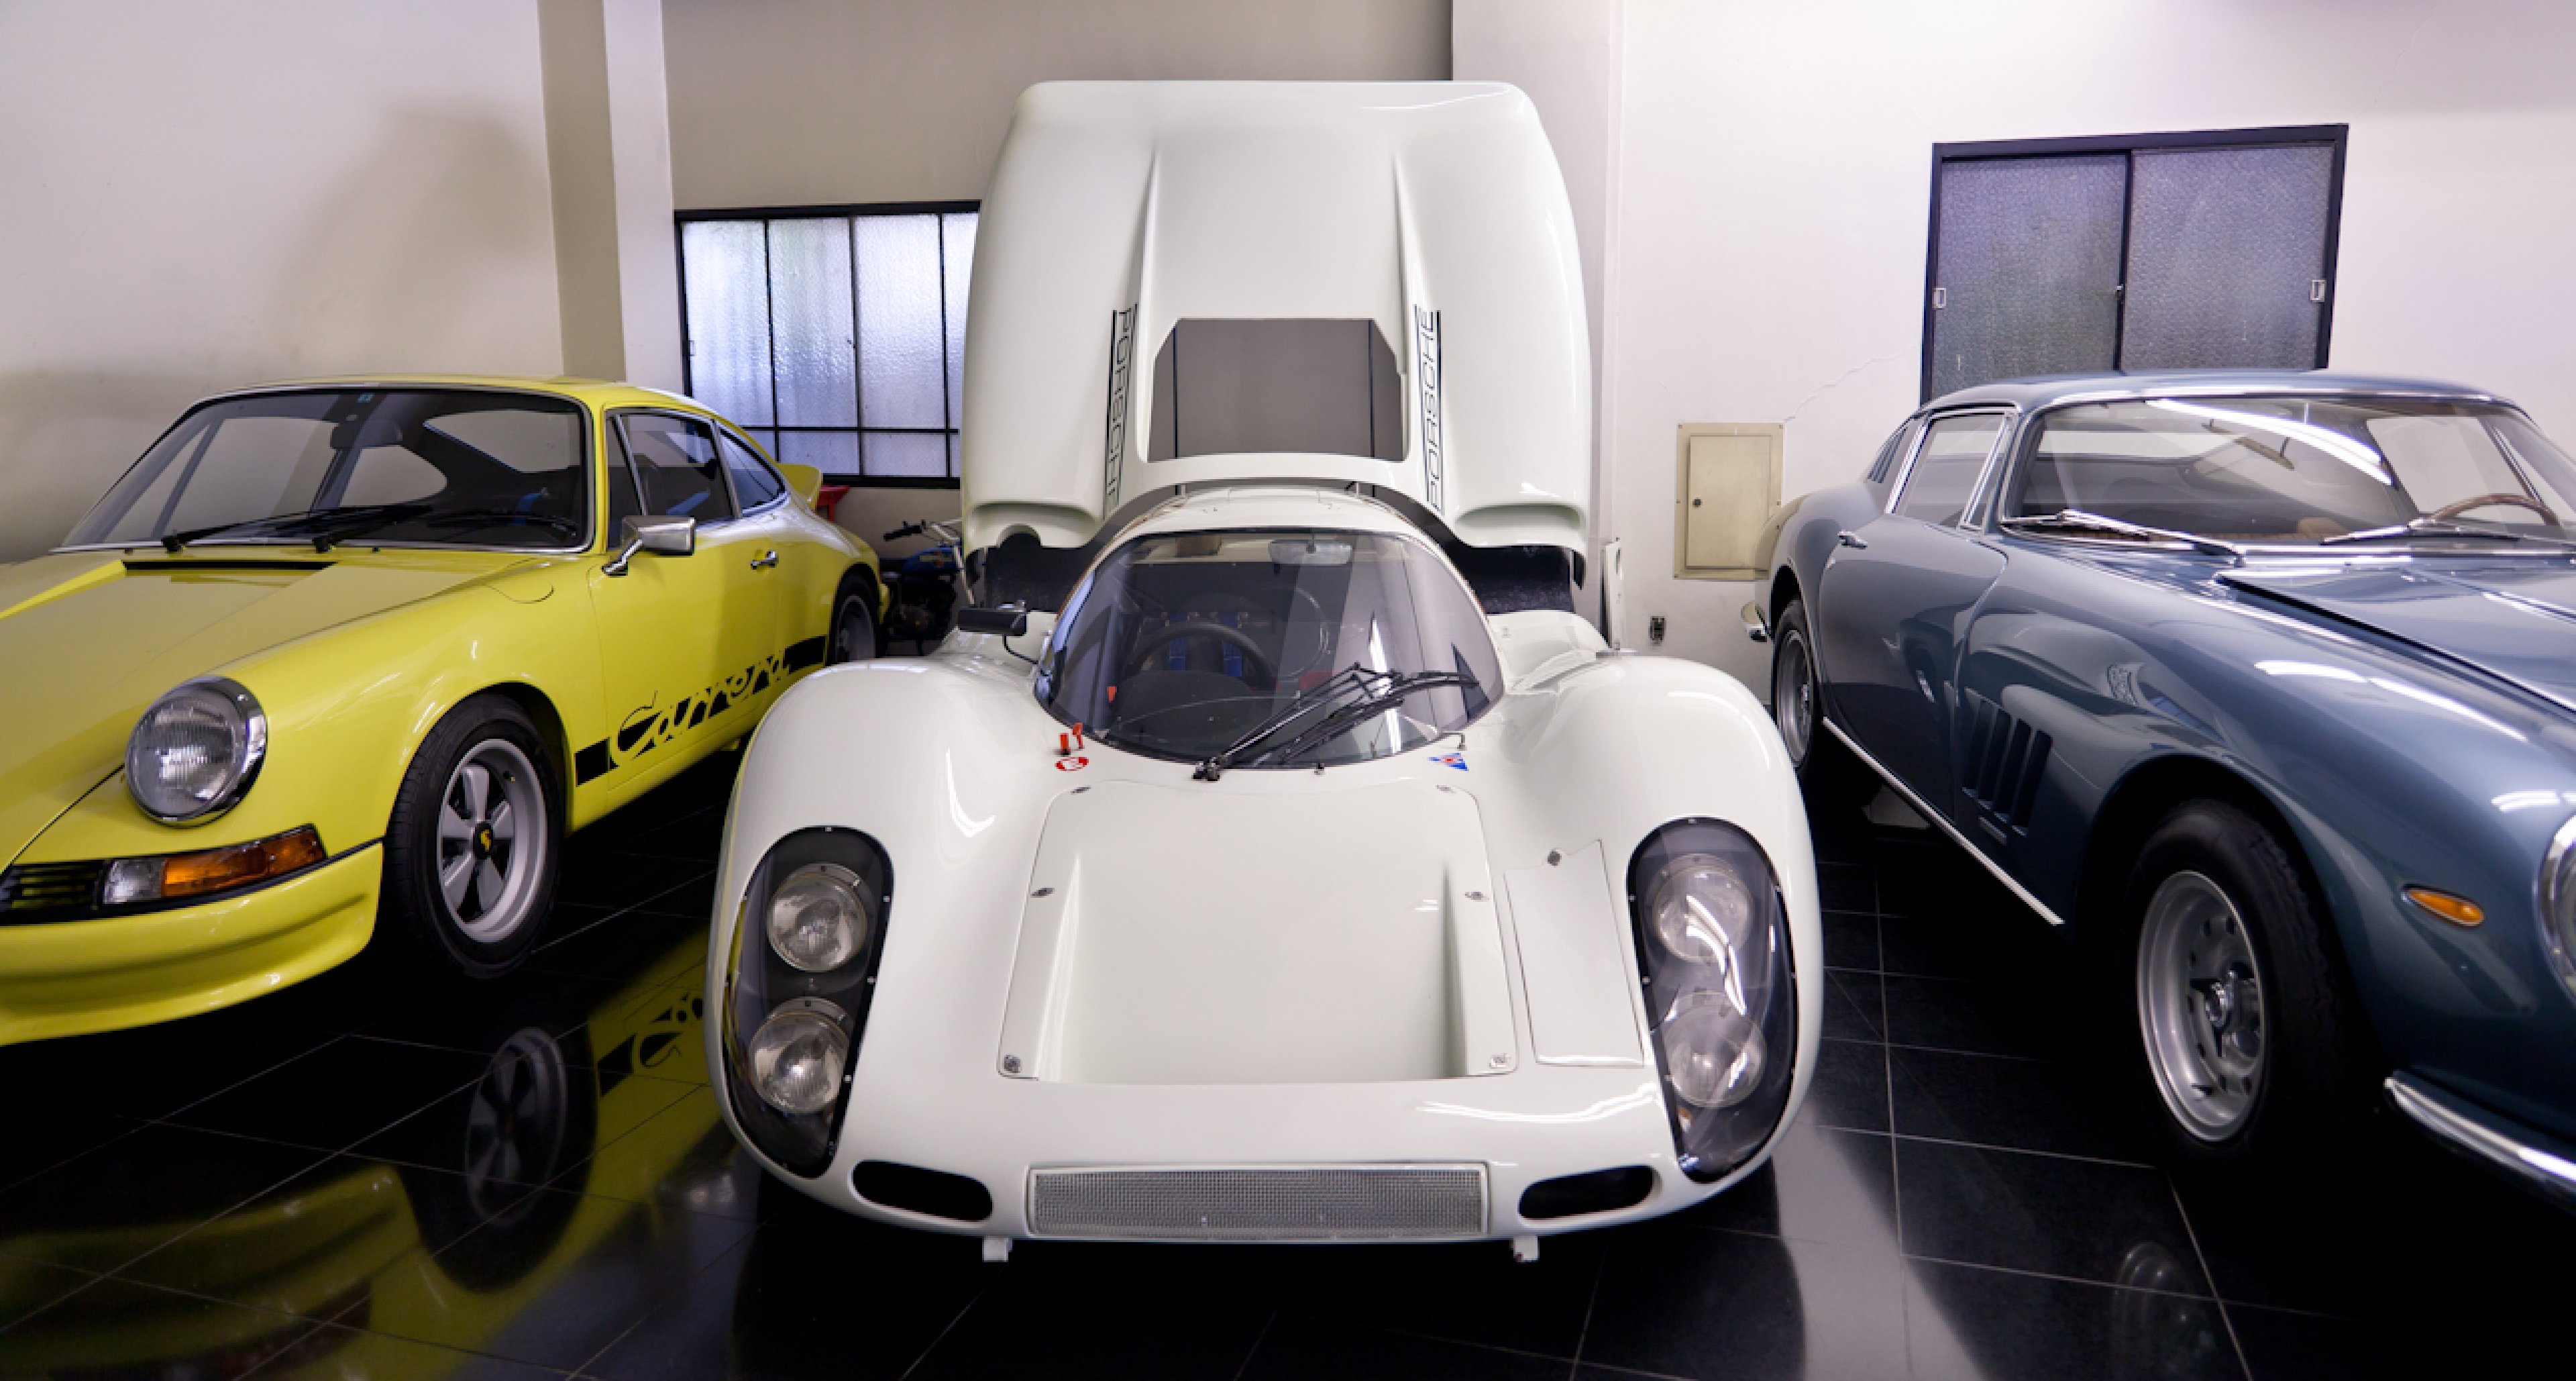 Naito-san used to drive this Porsche 907K, highly original with a documented race history, on the road. He claims it was very easy to drive round town.